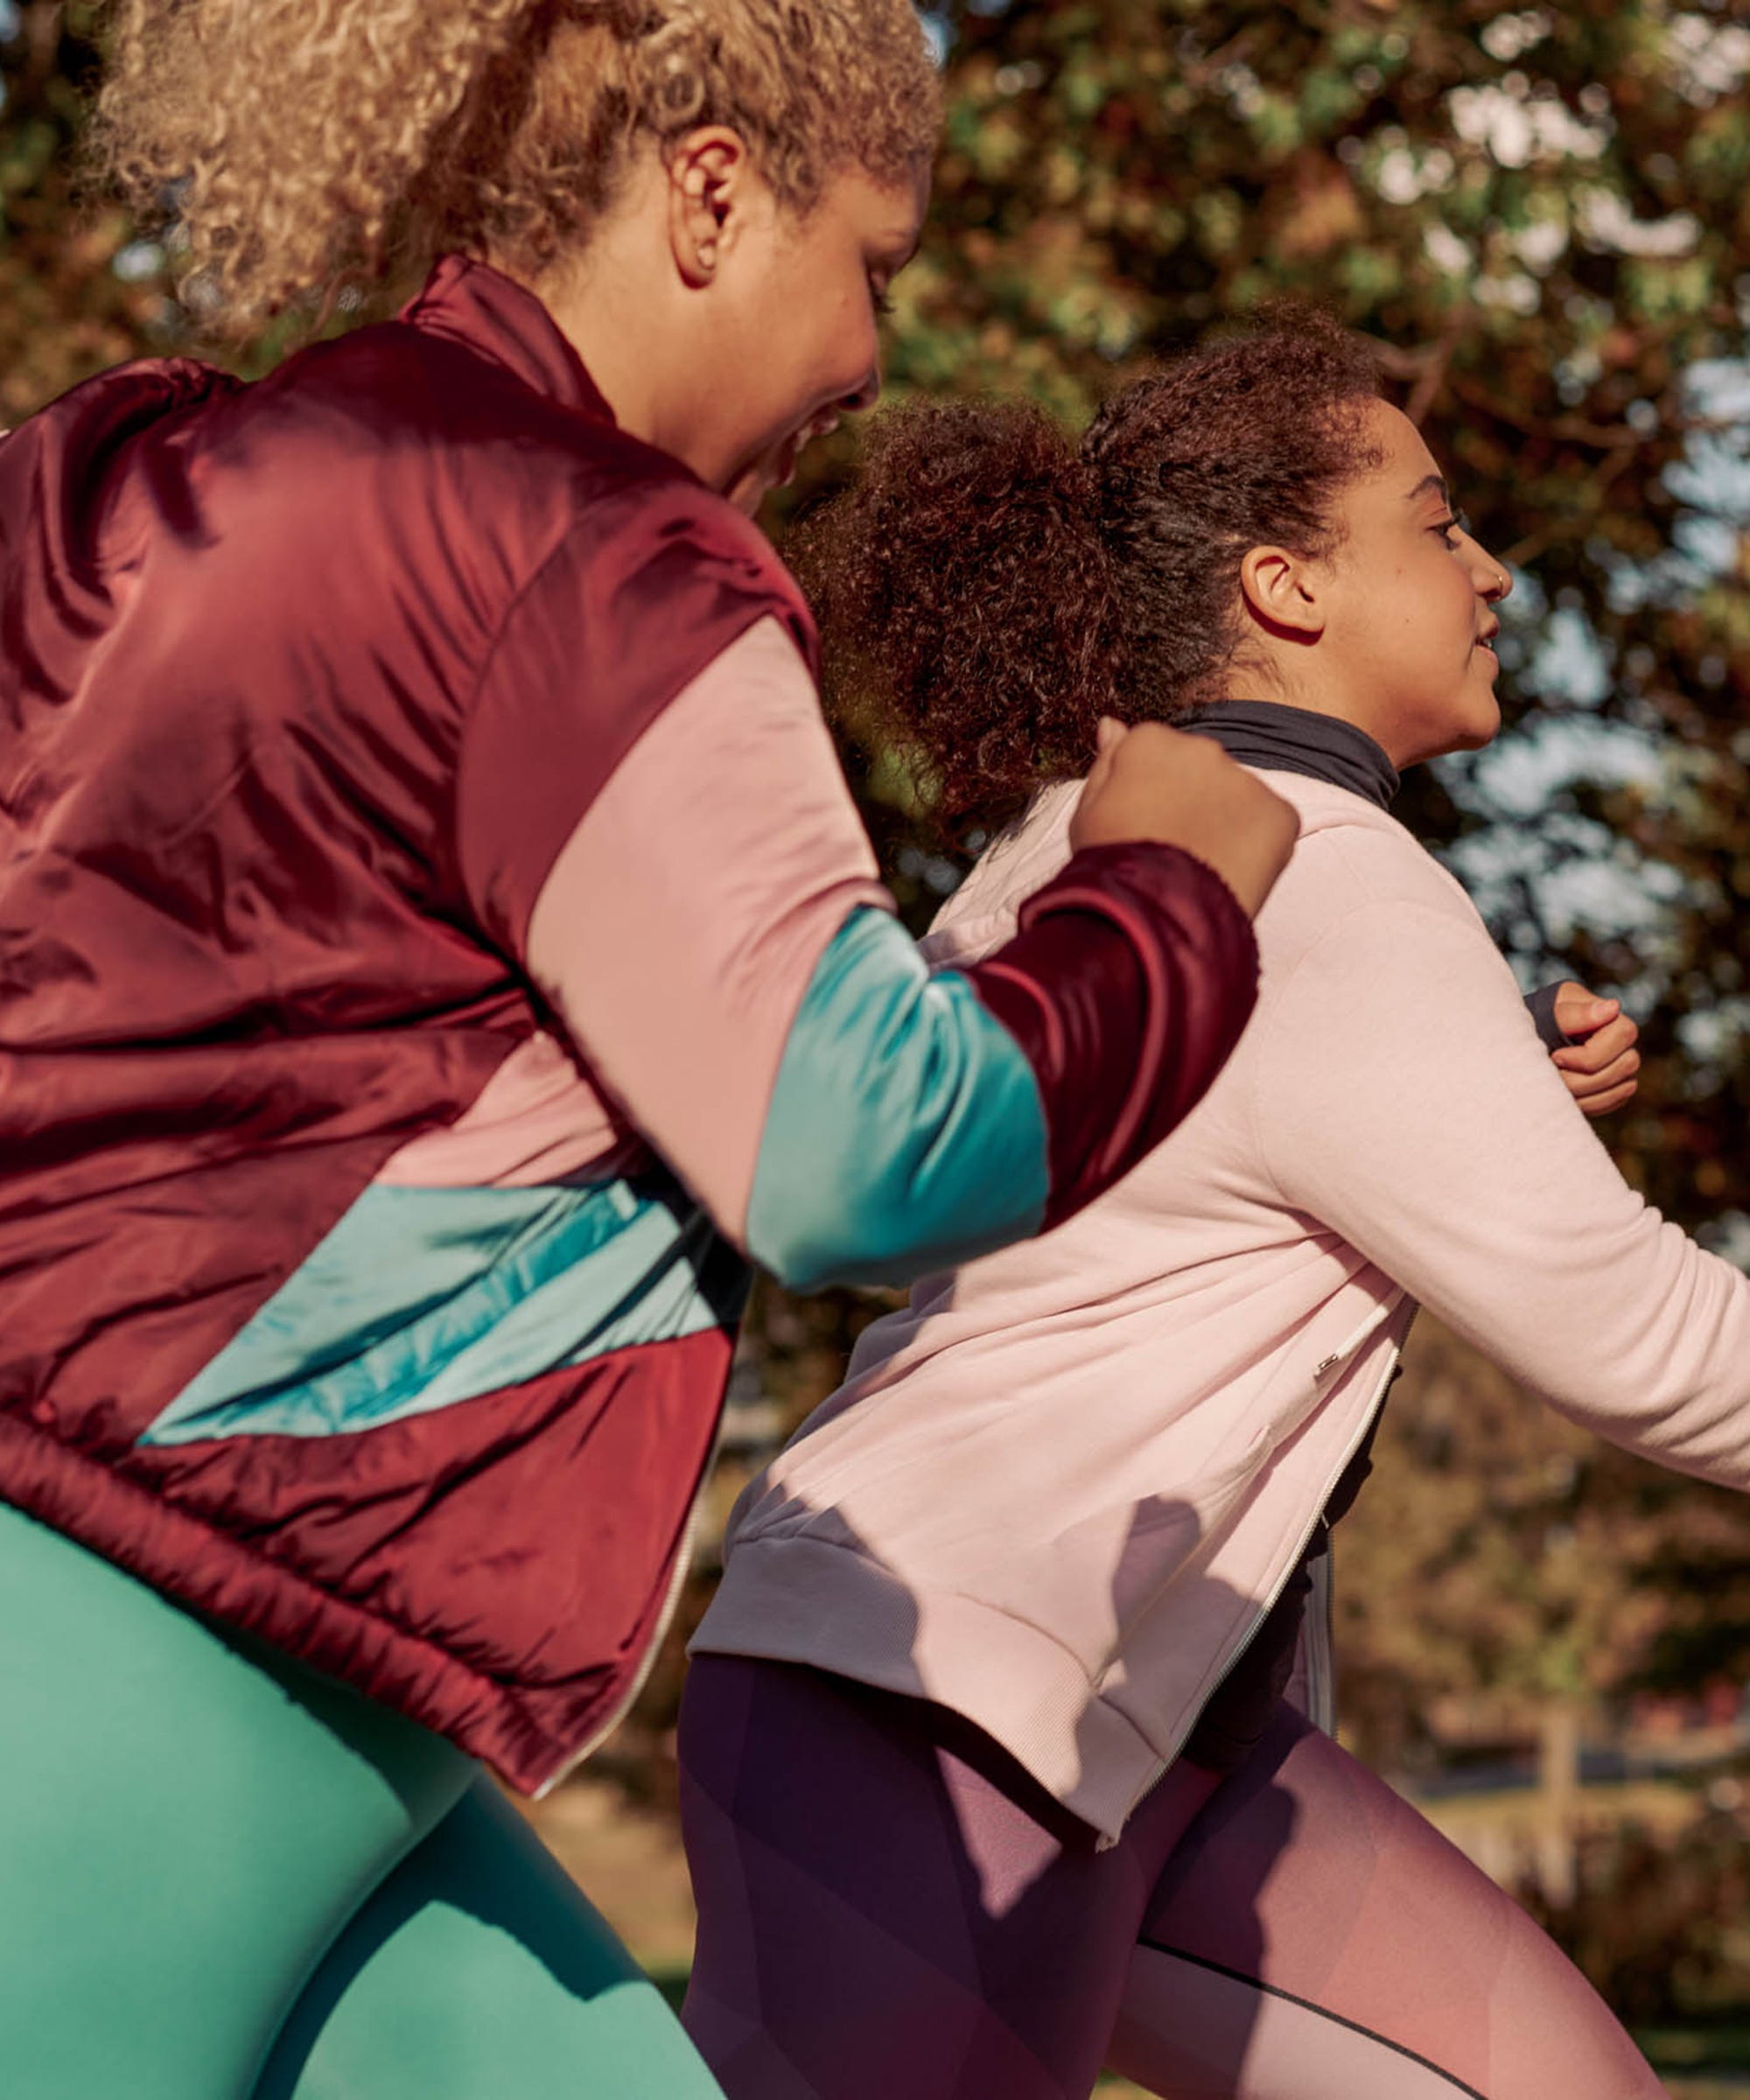 Does Running Make Your Period Go Away?